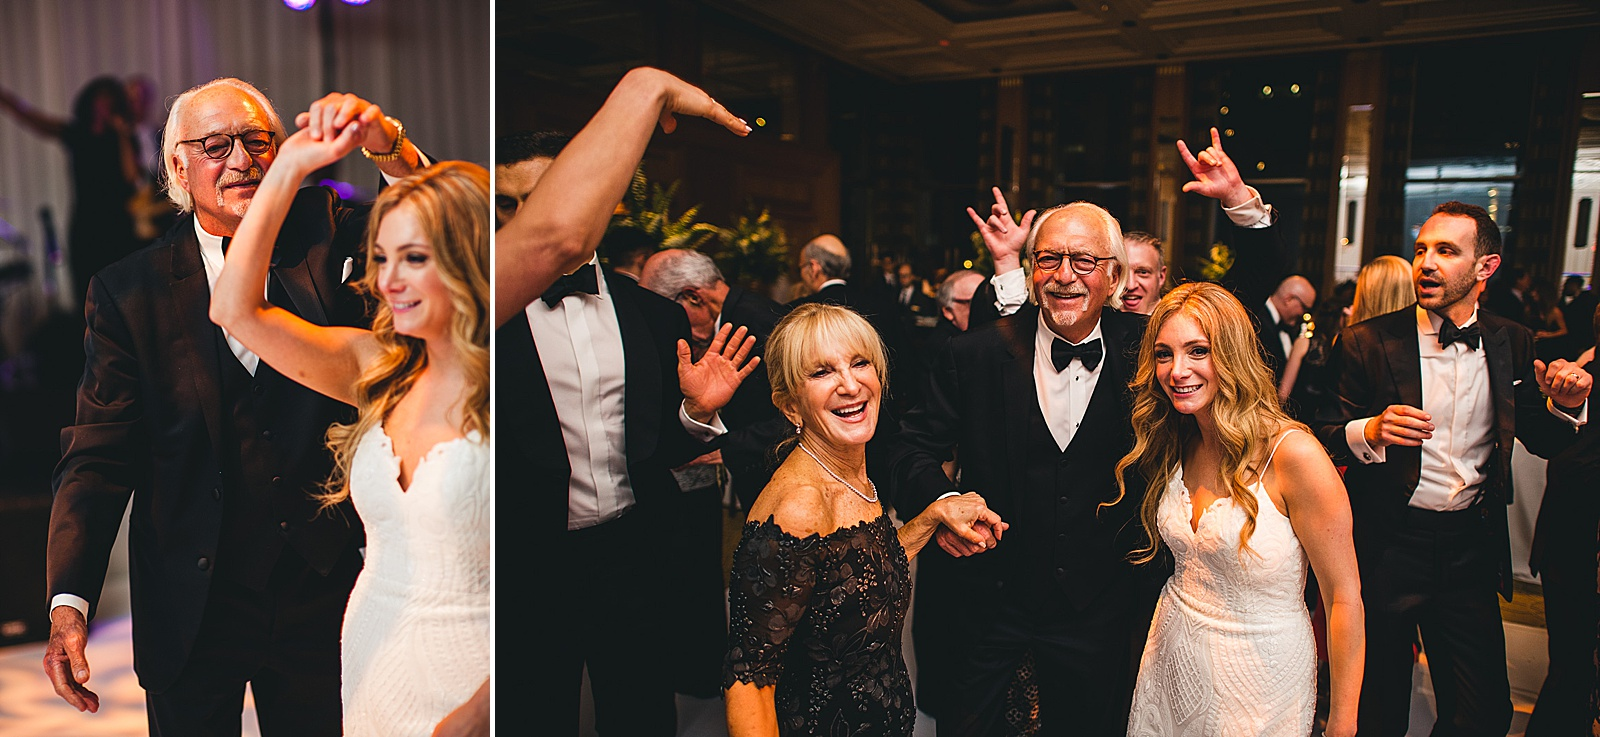 63 lets party - Susie + Eric's Jewish Wedding at the Peninsula Hotel in Chicago